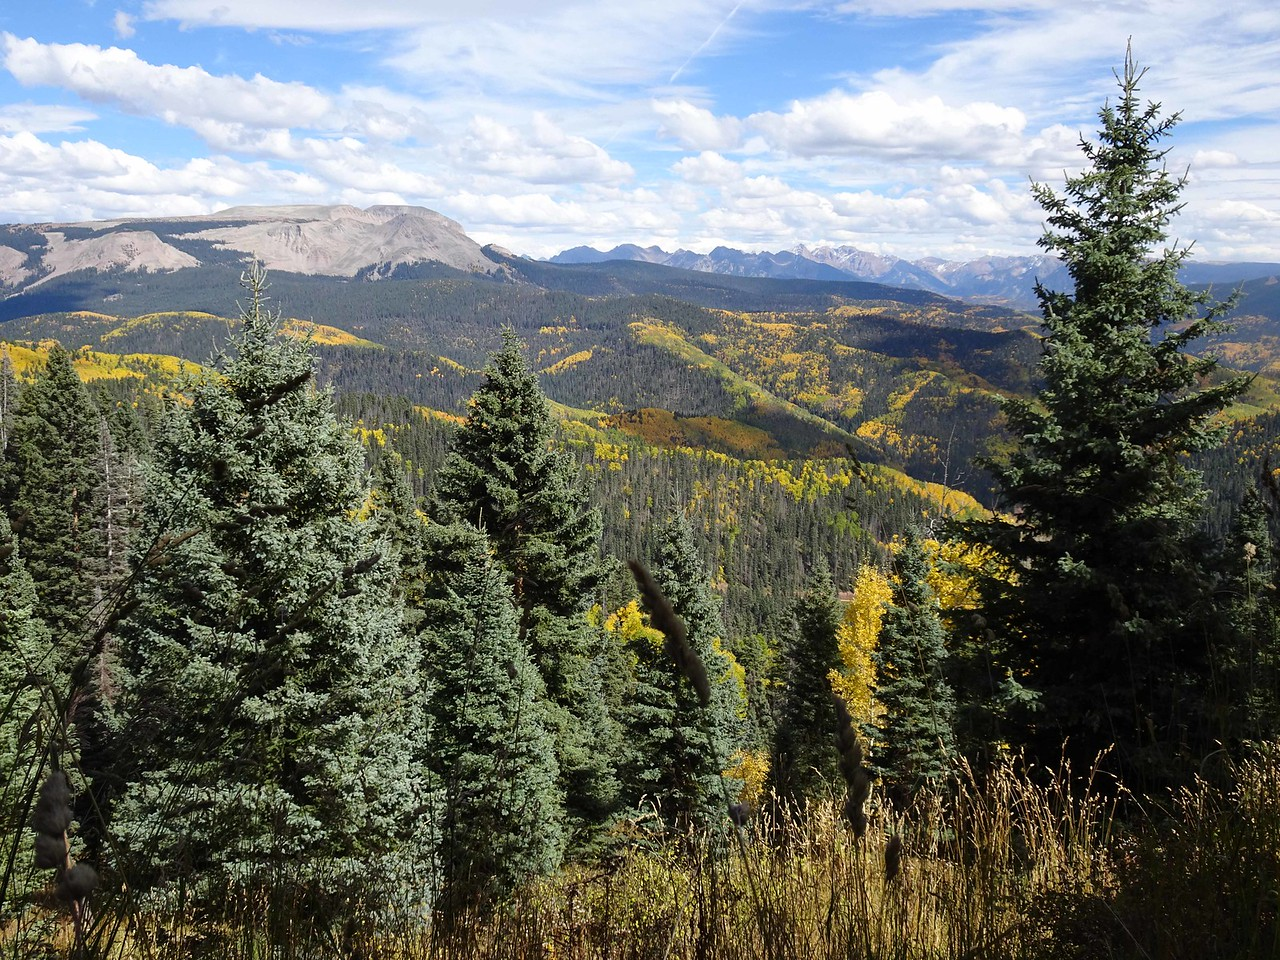 95 View to the east from the Colorado Trail near Hotel Draw